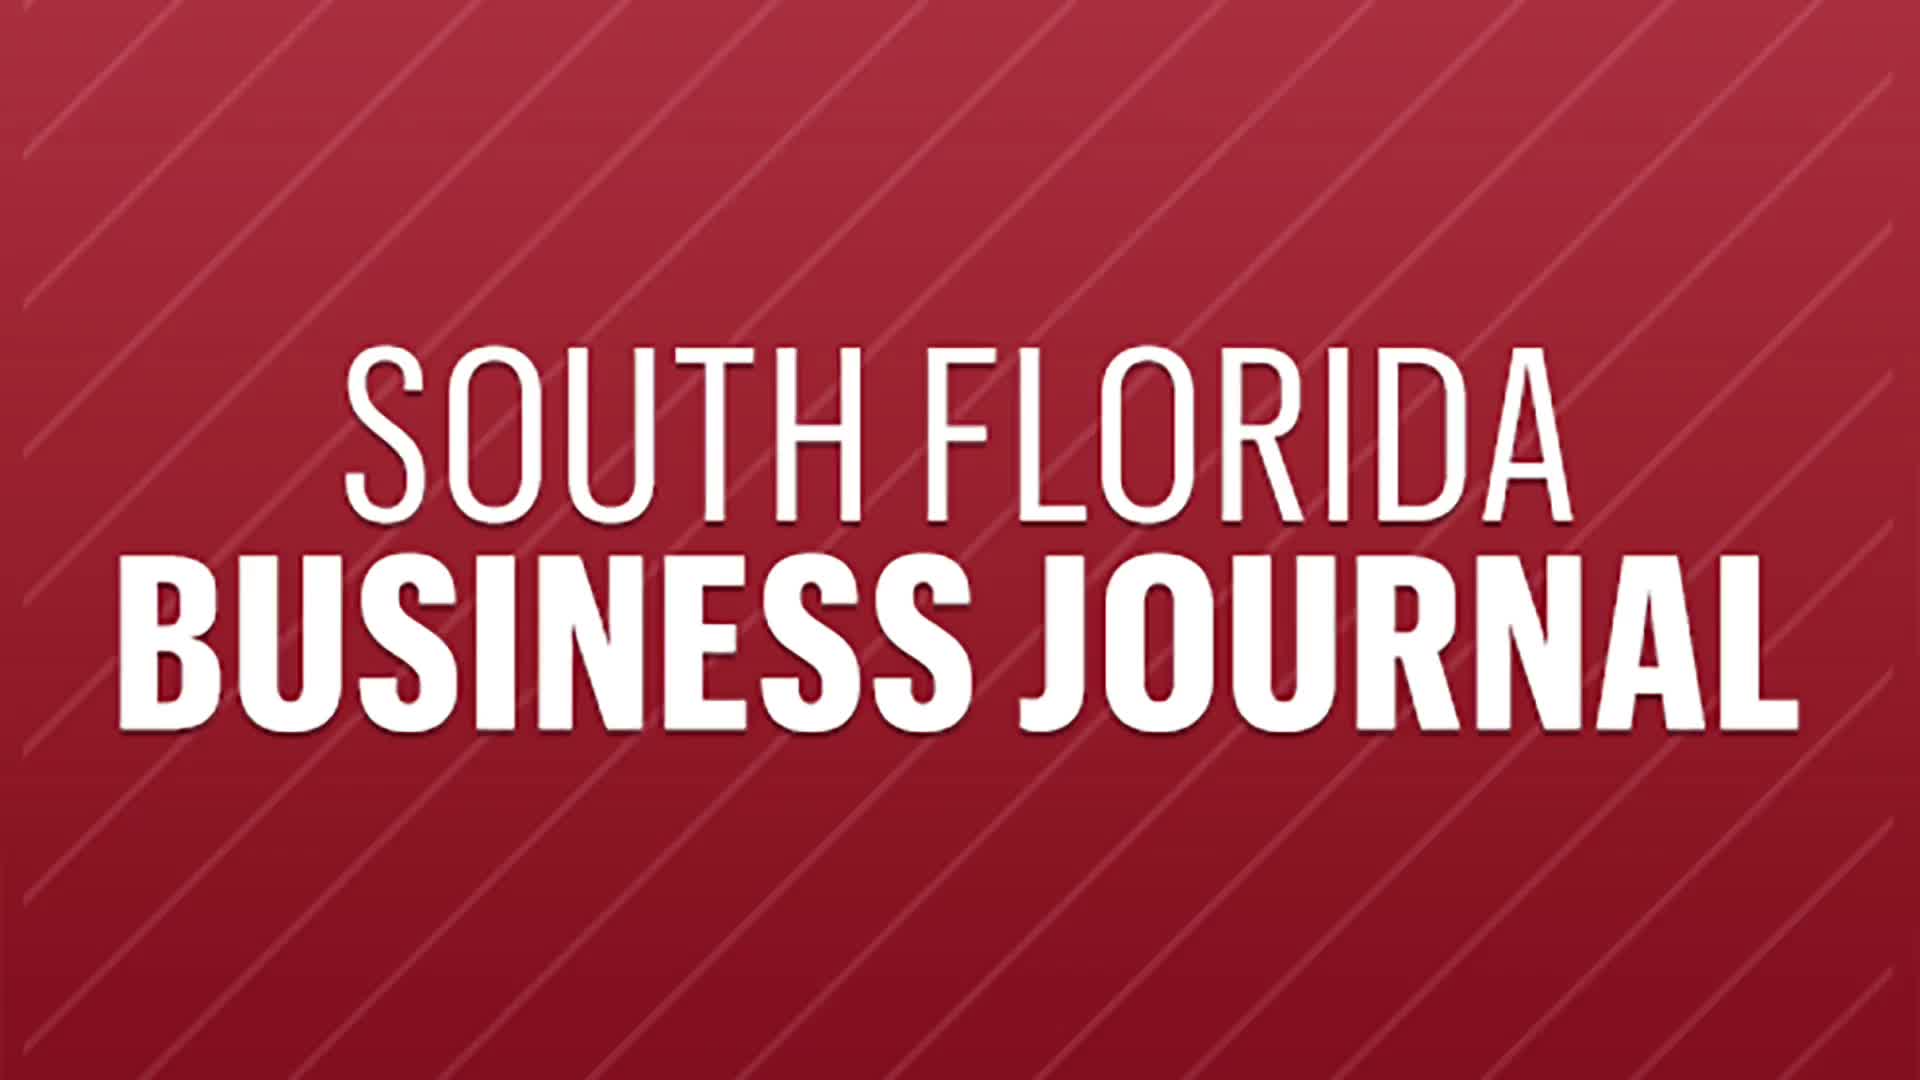 South Florida Business Journal: Harbor Crest Wealth Advisors Launches in Fort Lauderdale Thumbnail